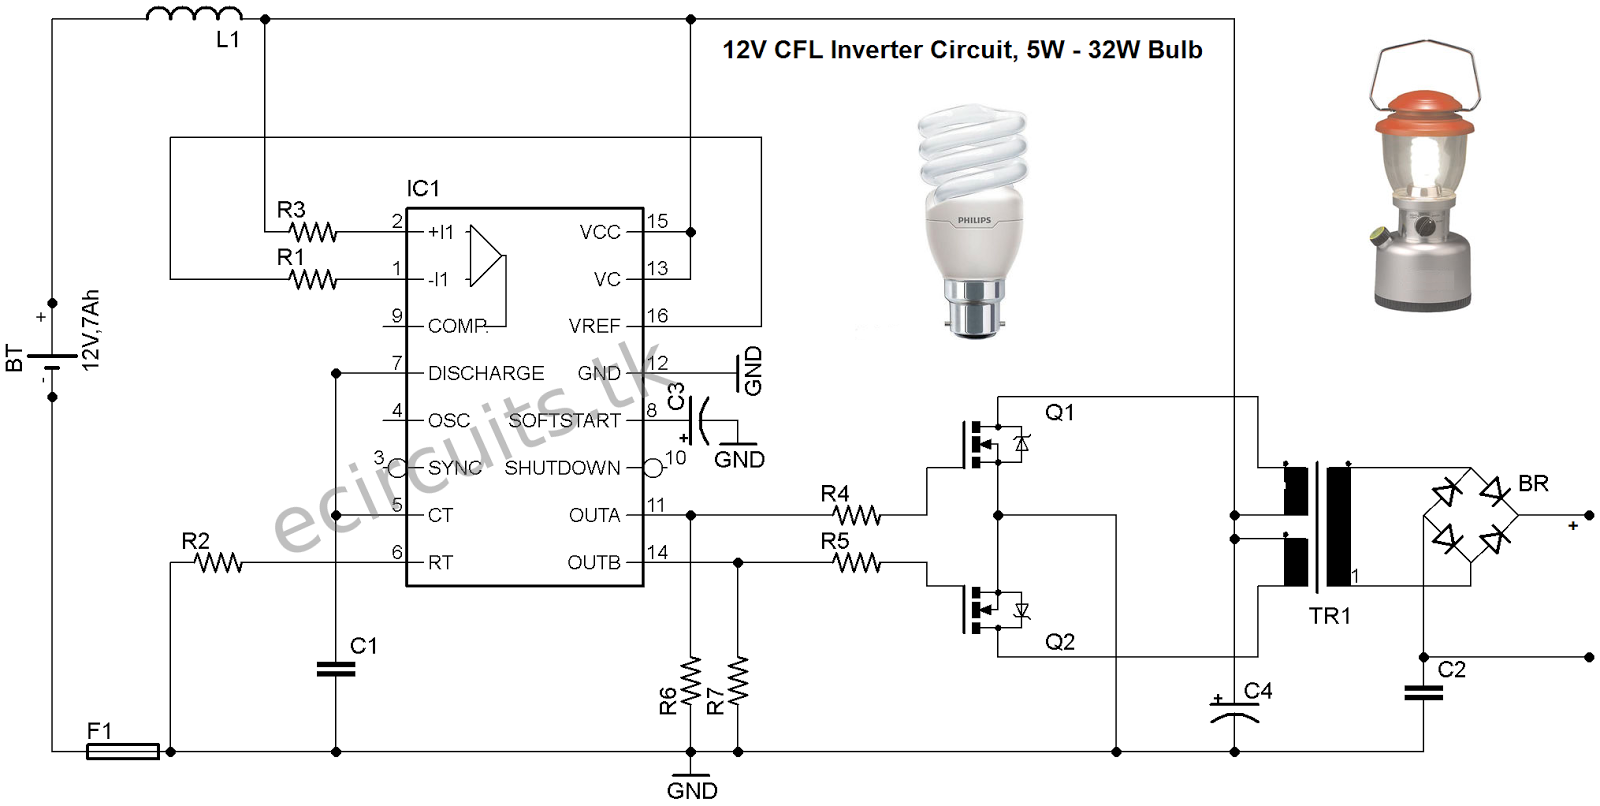 Cfl Wiring Diagram Archive Of Automotive Ballast Circuit 12v Emergency Light Using 3525 Ic Mini Inverter Rh Simplecircuitsprojects Blogspot Com 4 Pin To Led